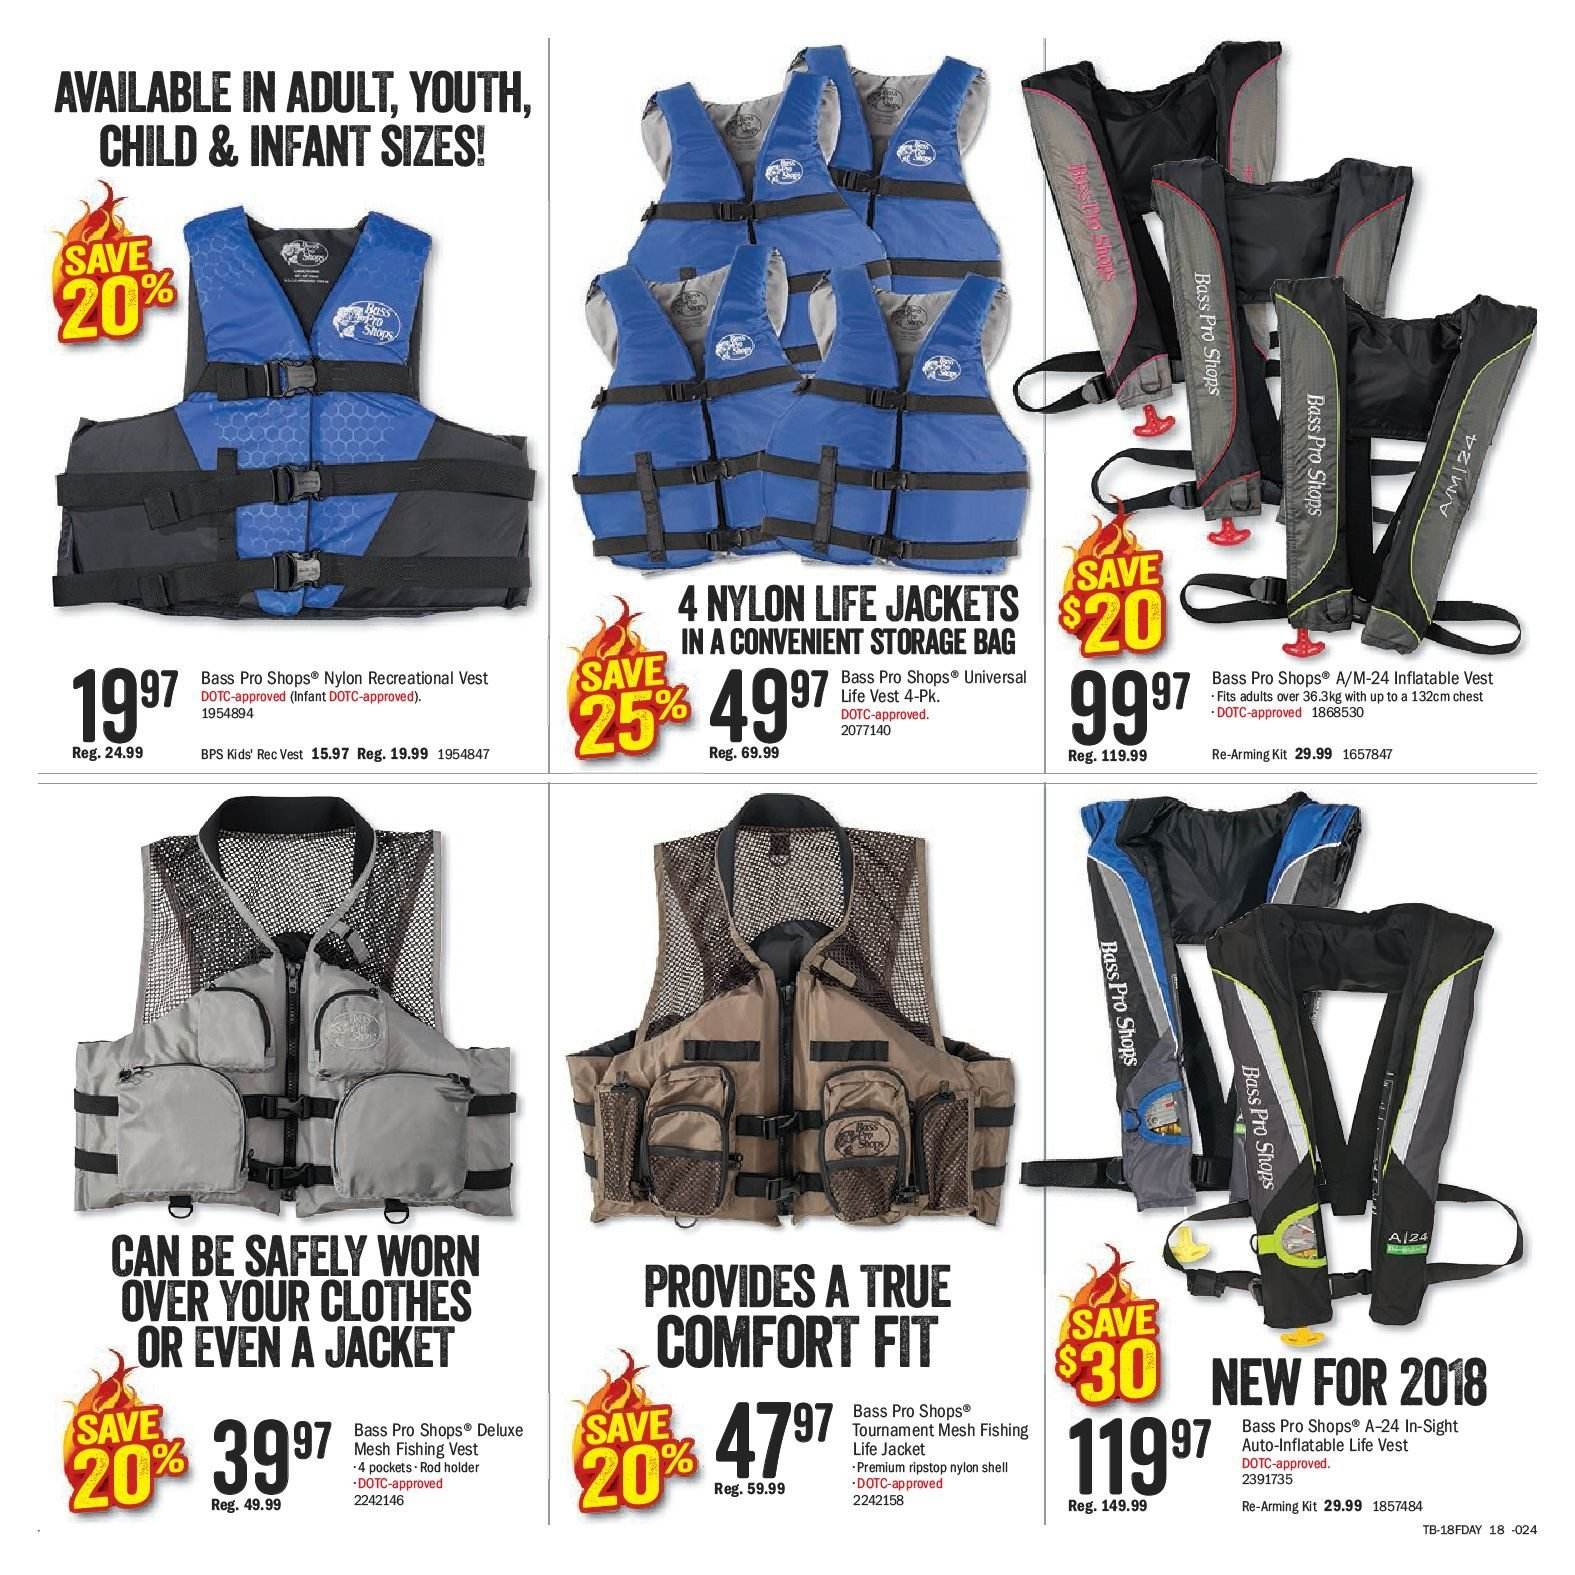 Bass Pro Shops Flyer  - May 29, 2018 - June 17, 2018. Page 18.